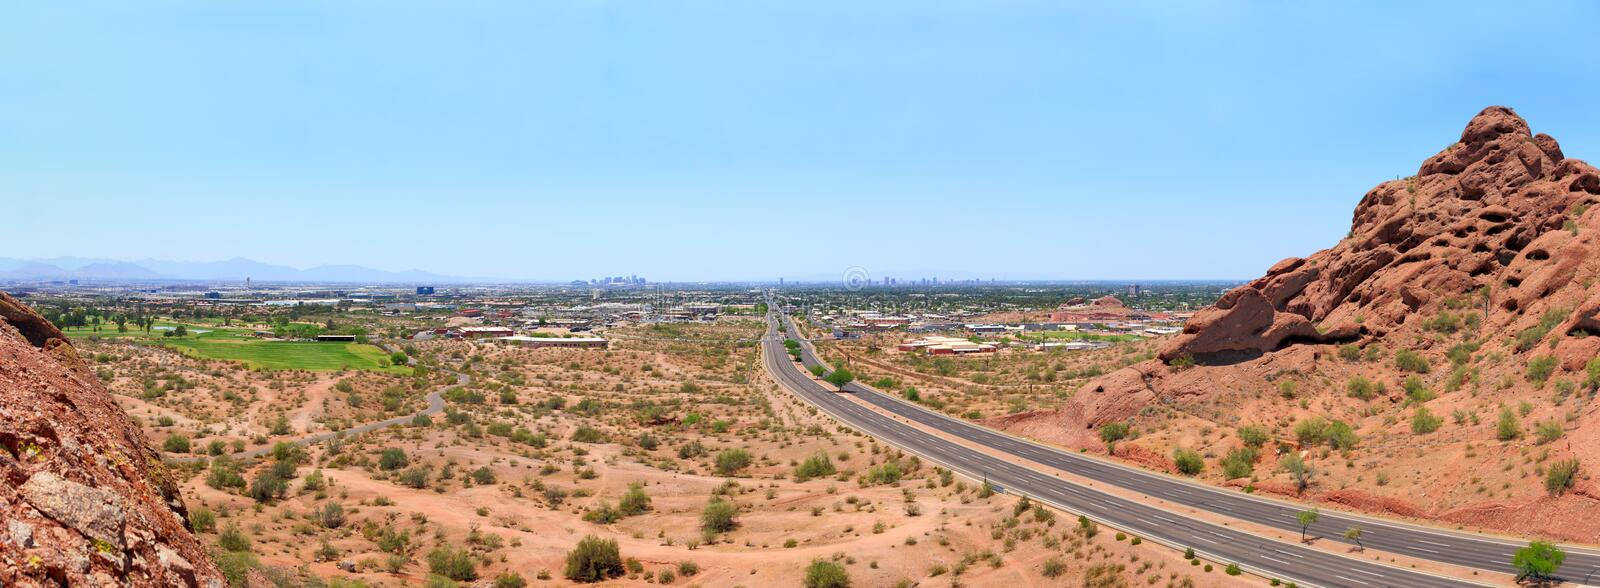 McDowell Road to Phoenix, AZ. McDowell Road to Phoenix downtown from Papago park, Arizona royalty free stock photos